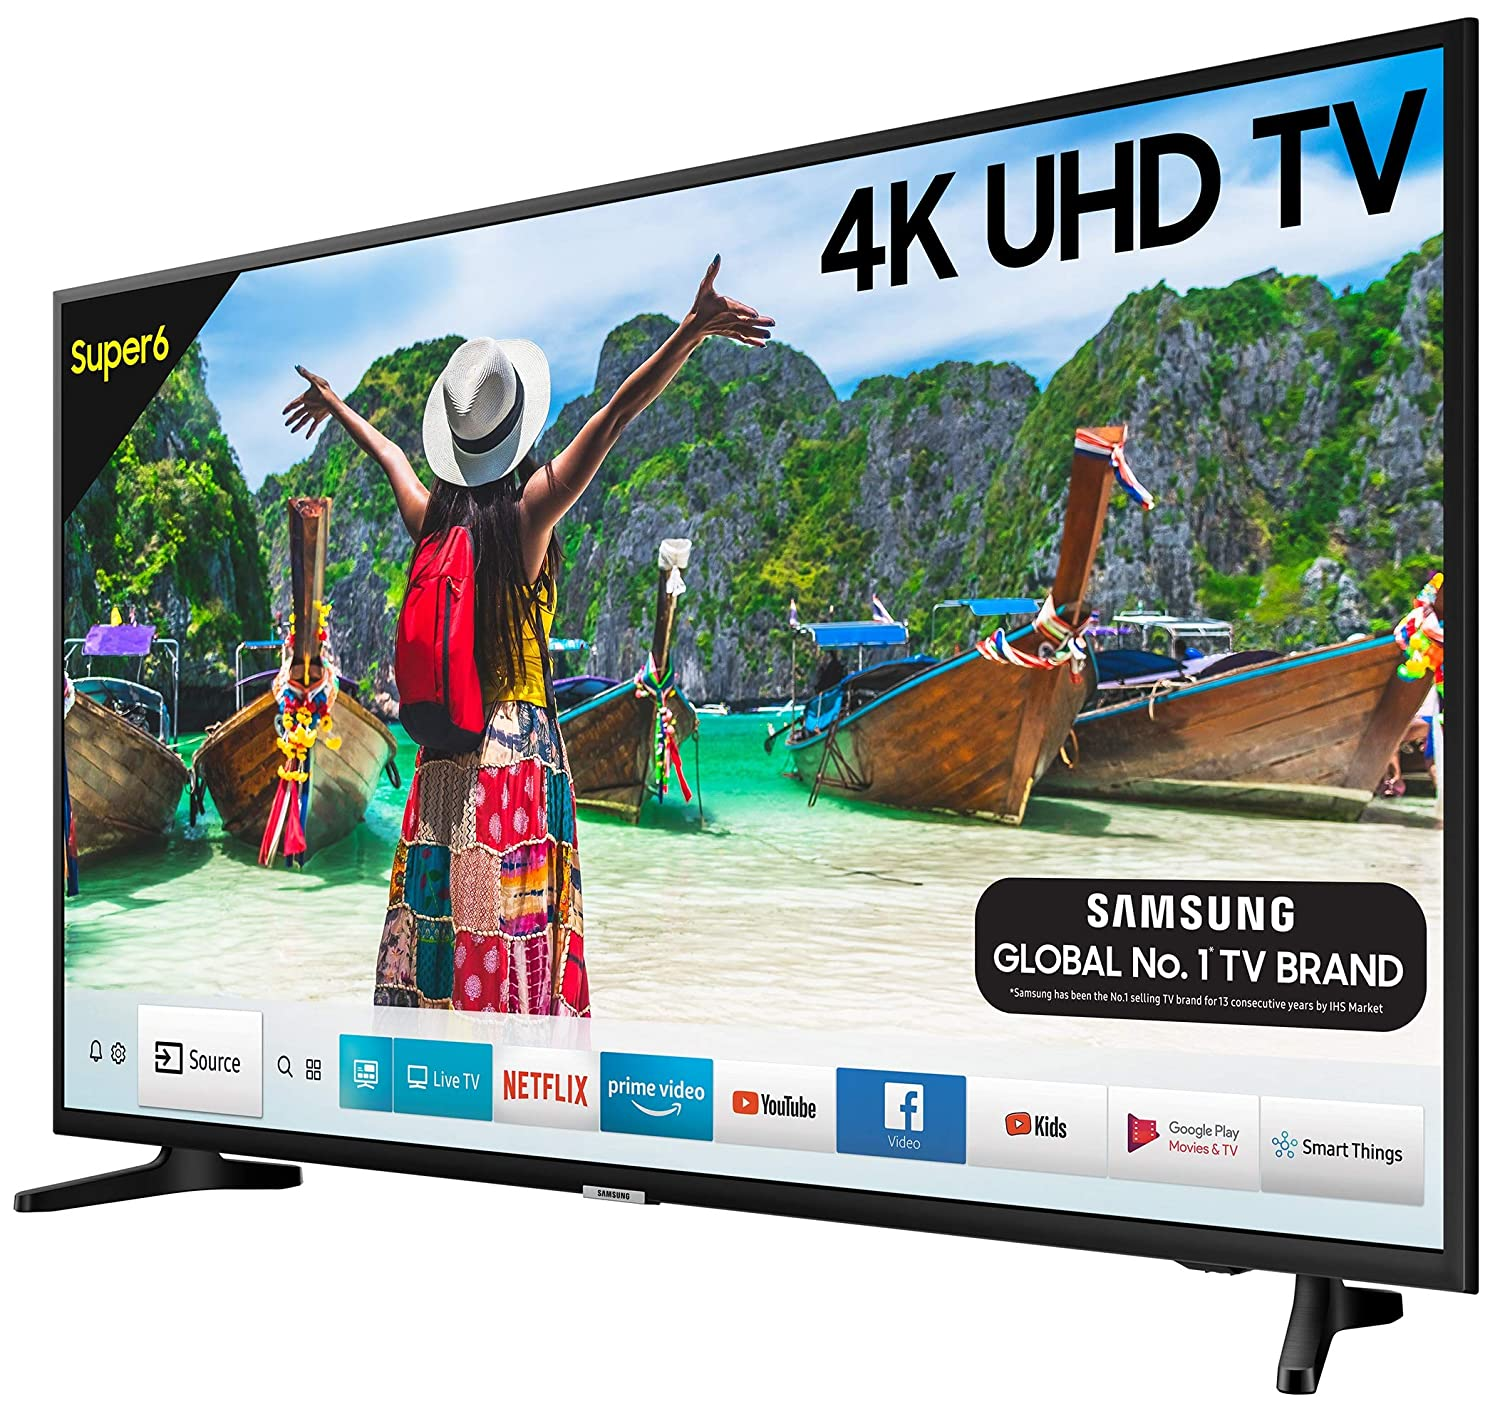 Samsung 125 cm (50 Inches) Super 6 Series 4K UHD LED Smart TV